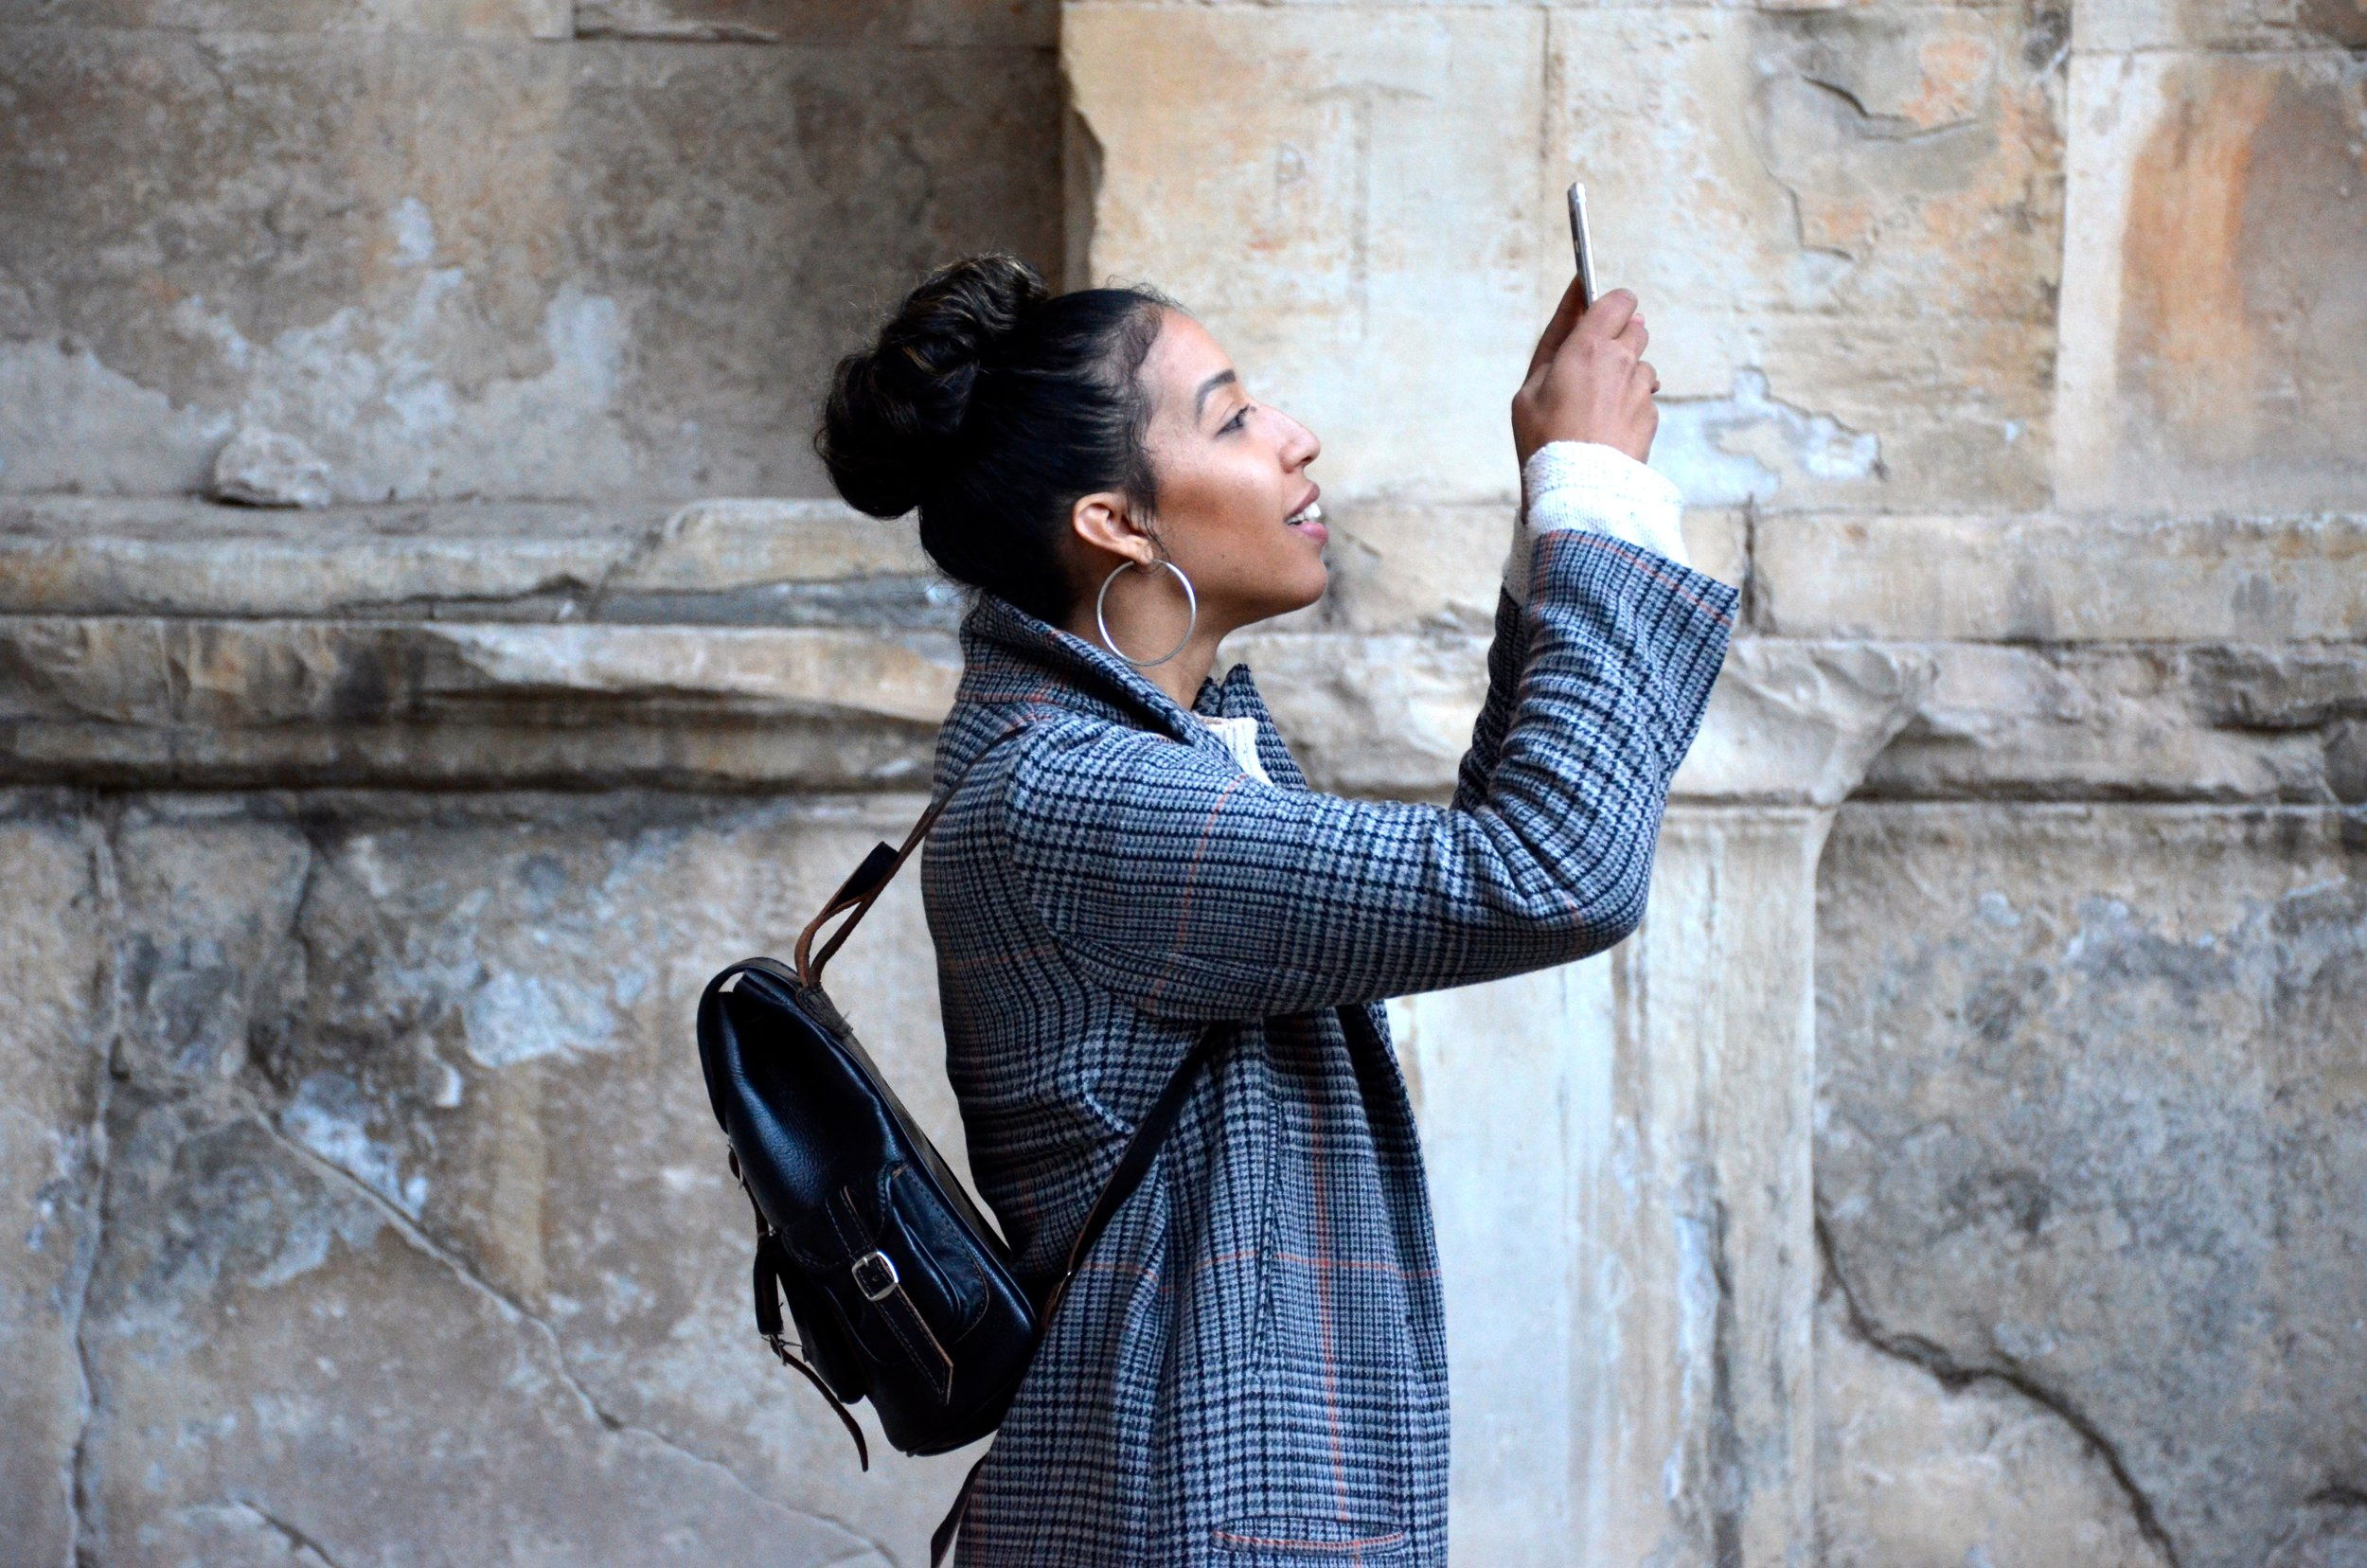 Are social media filters affecting your self-esteem?